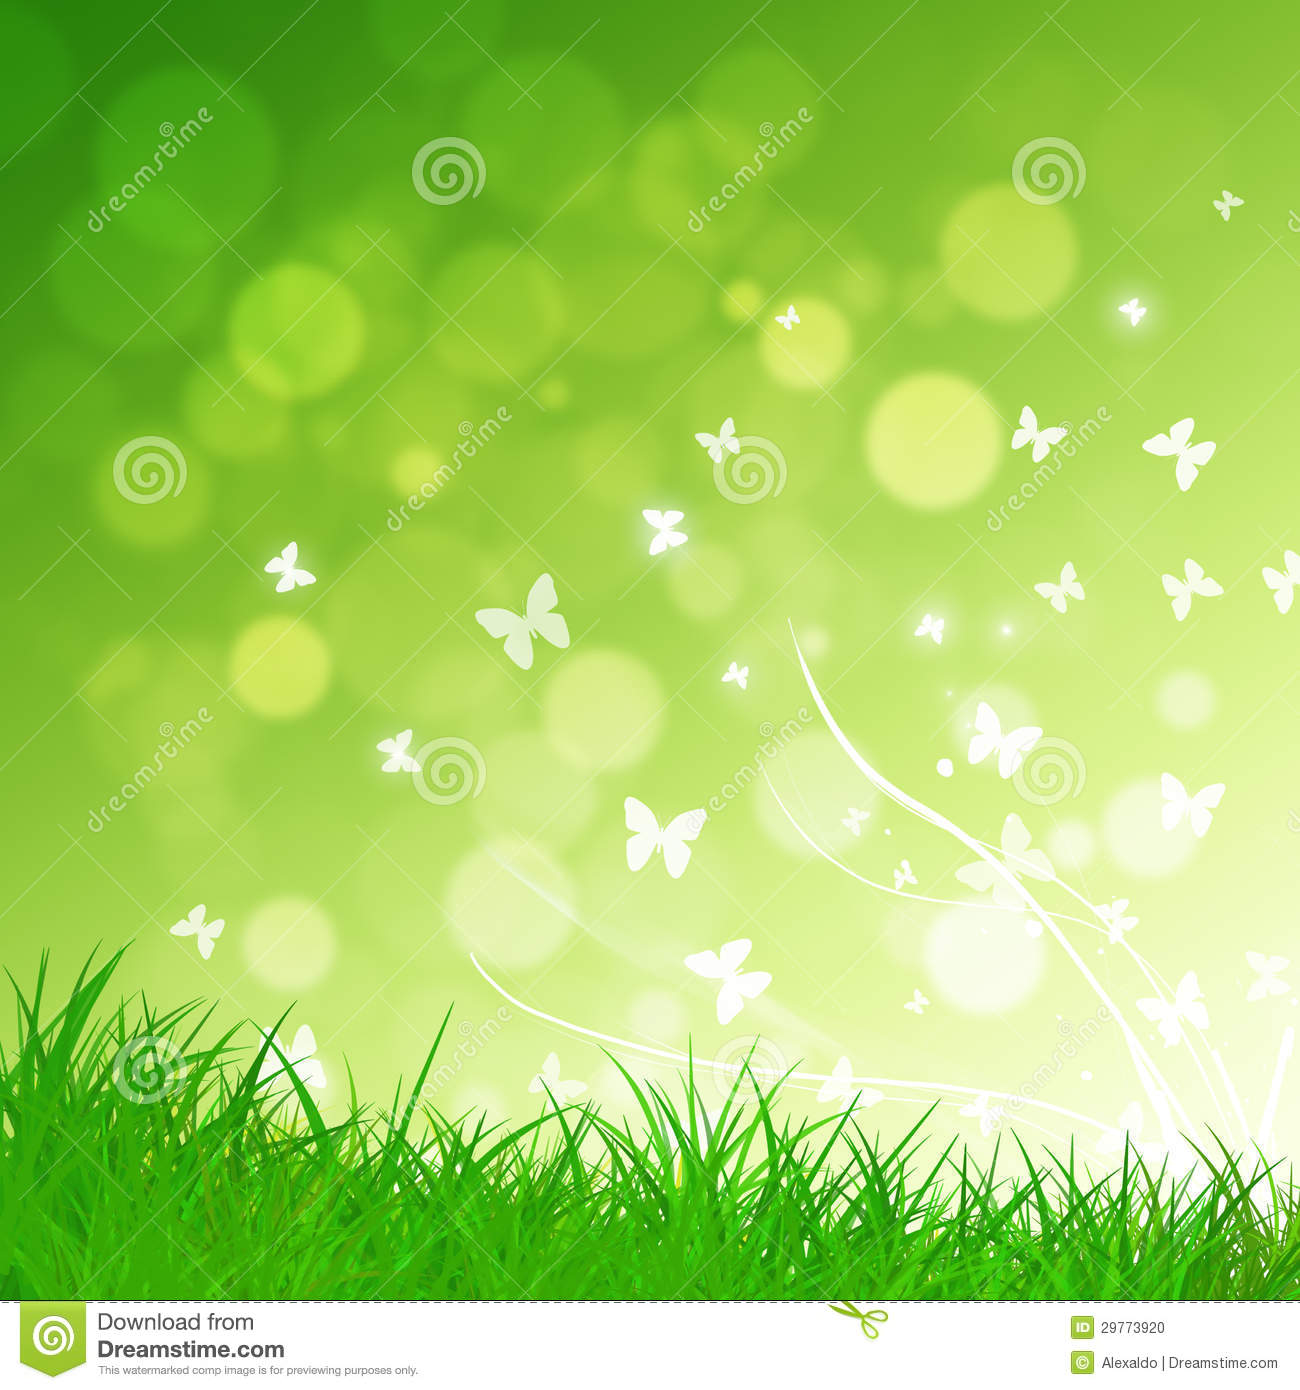 Abstract green nature background with grass and butterflies. Happy Child Clipart